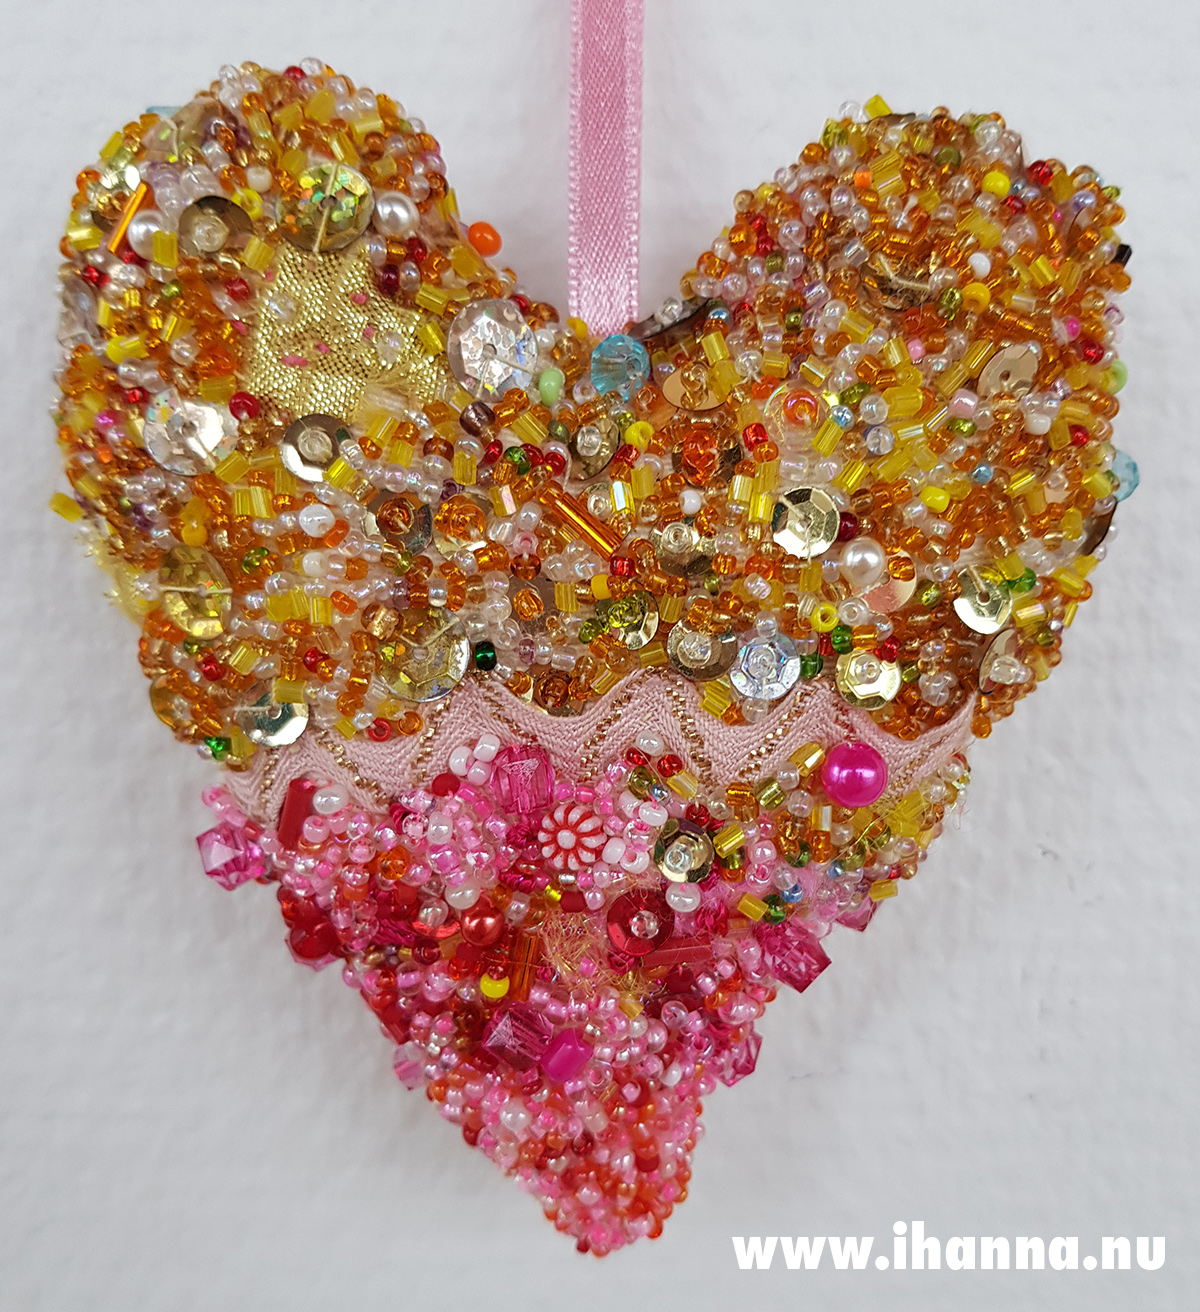 Beaded Heart Art Wall hanging by iHanna